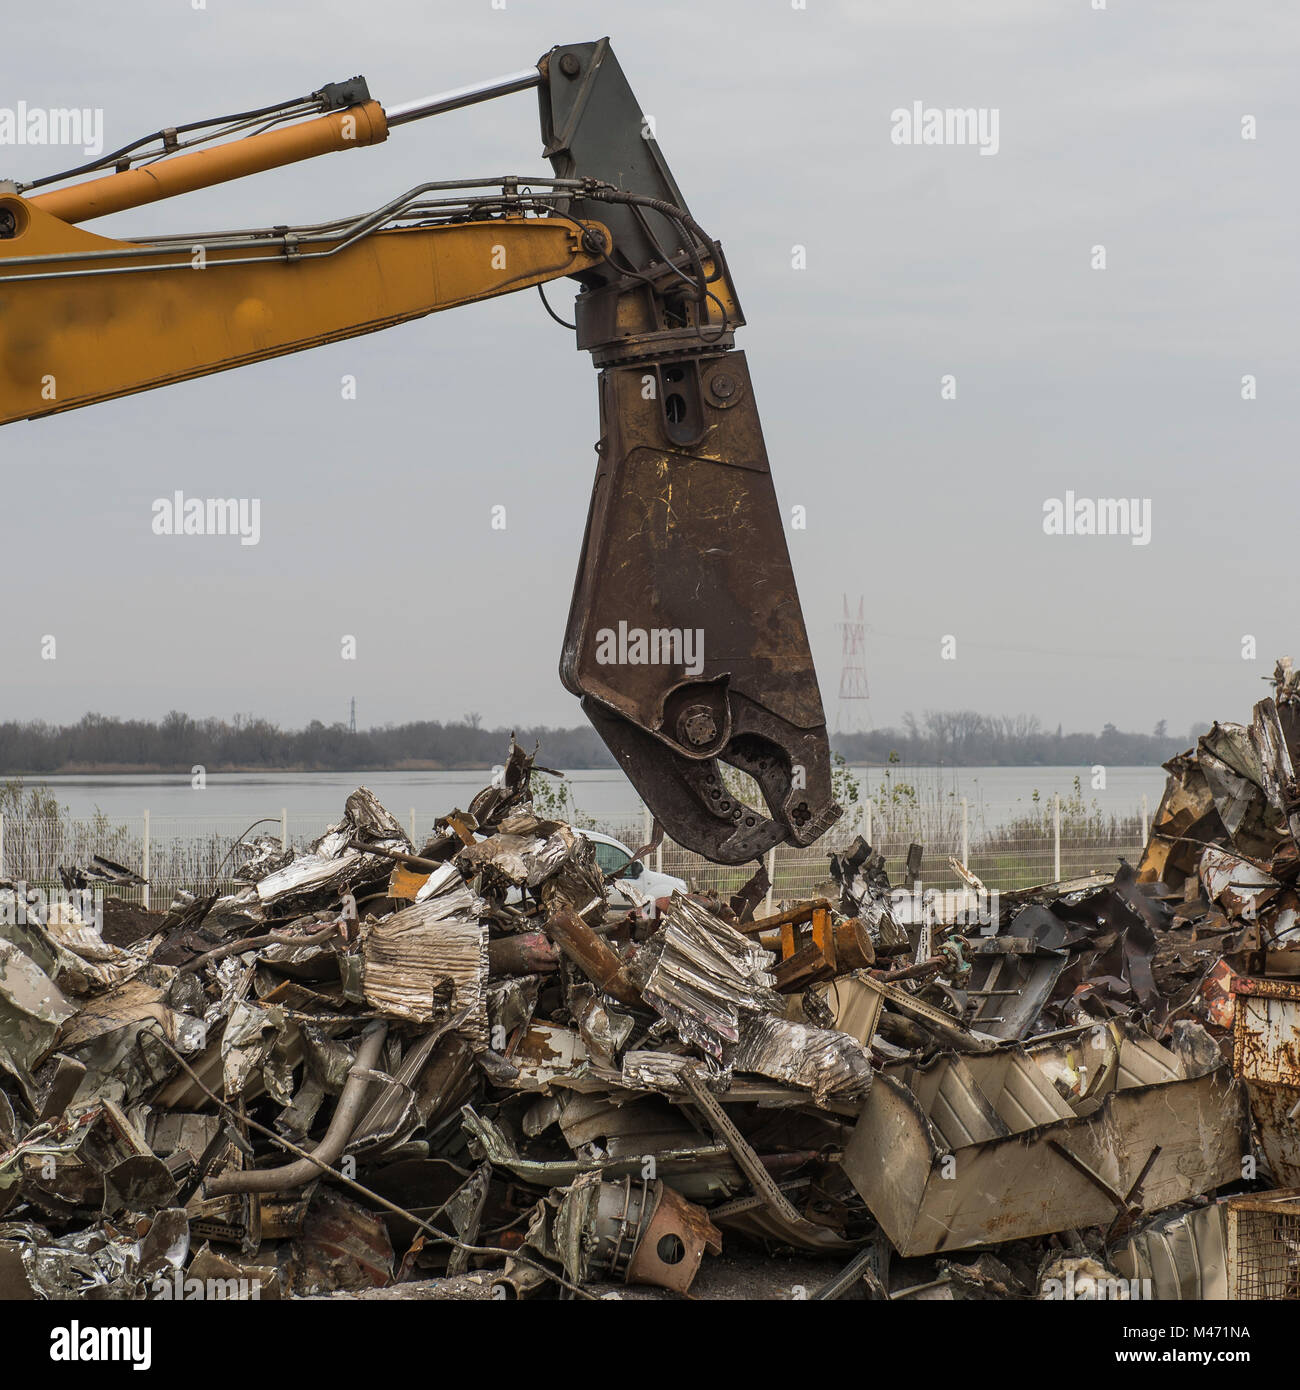 Large tracked excavator working a steel pile at a metal recycle yard, France - Stock Image